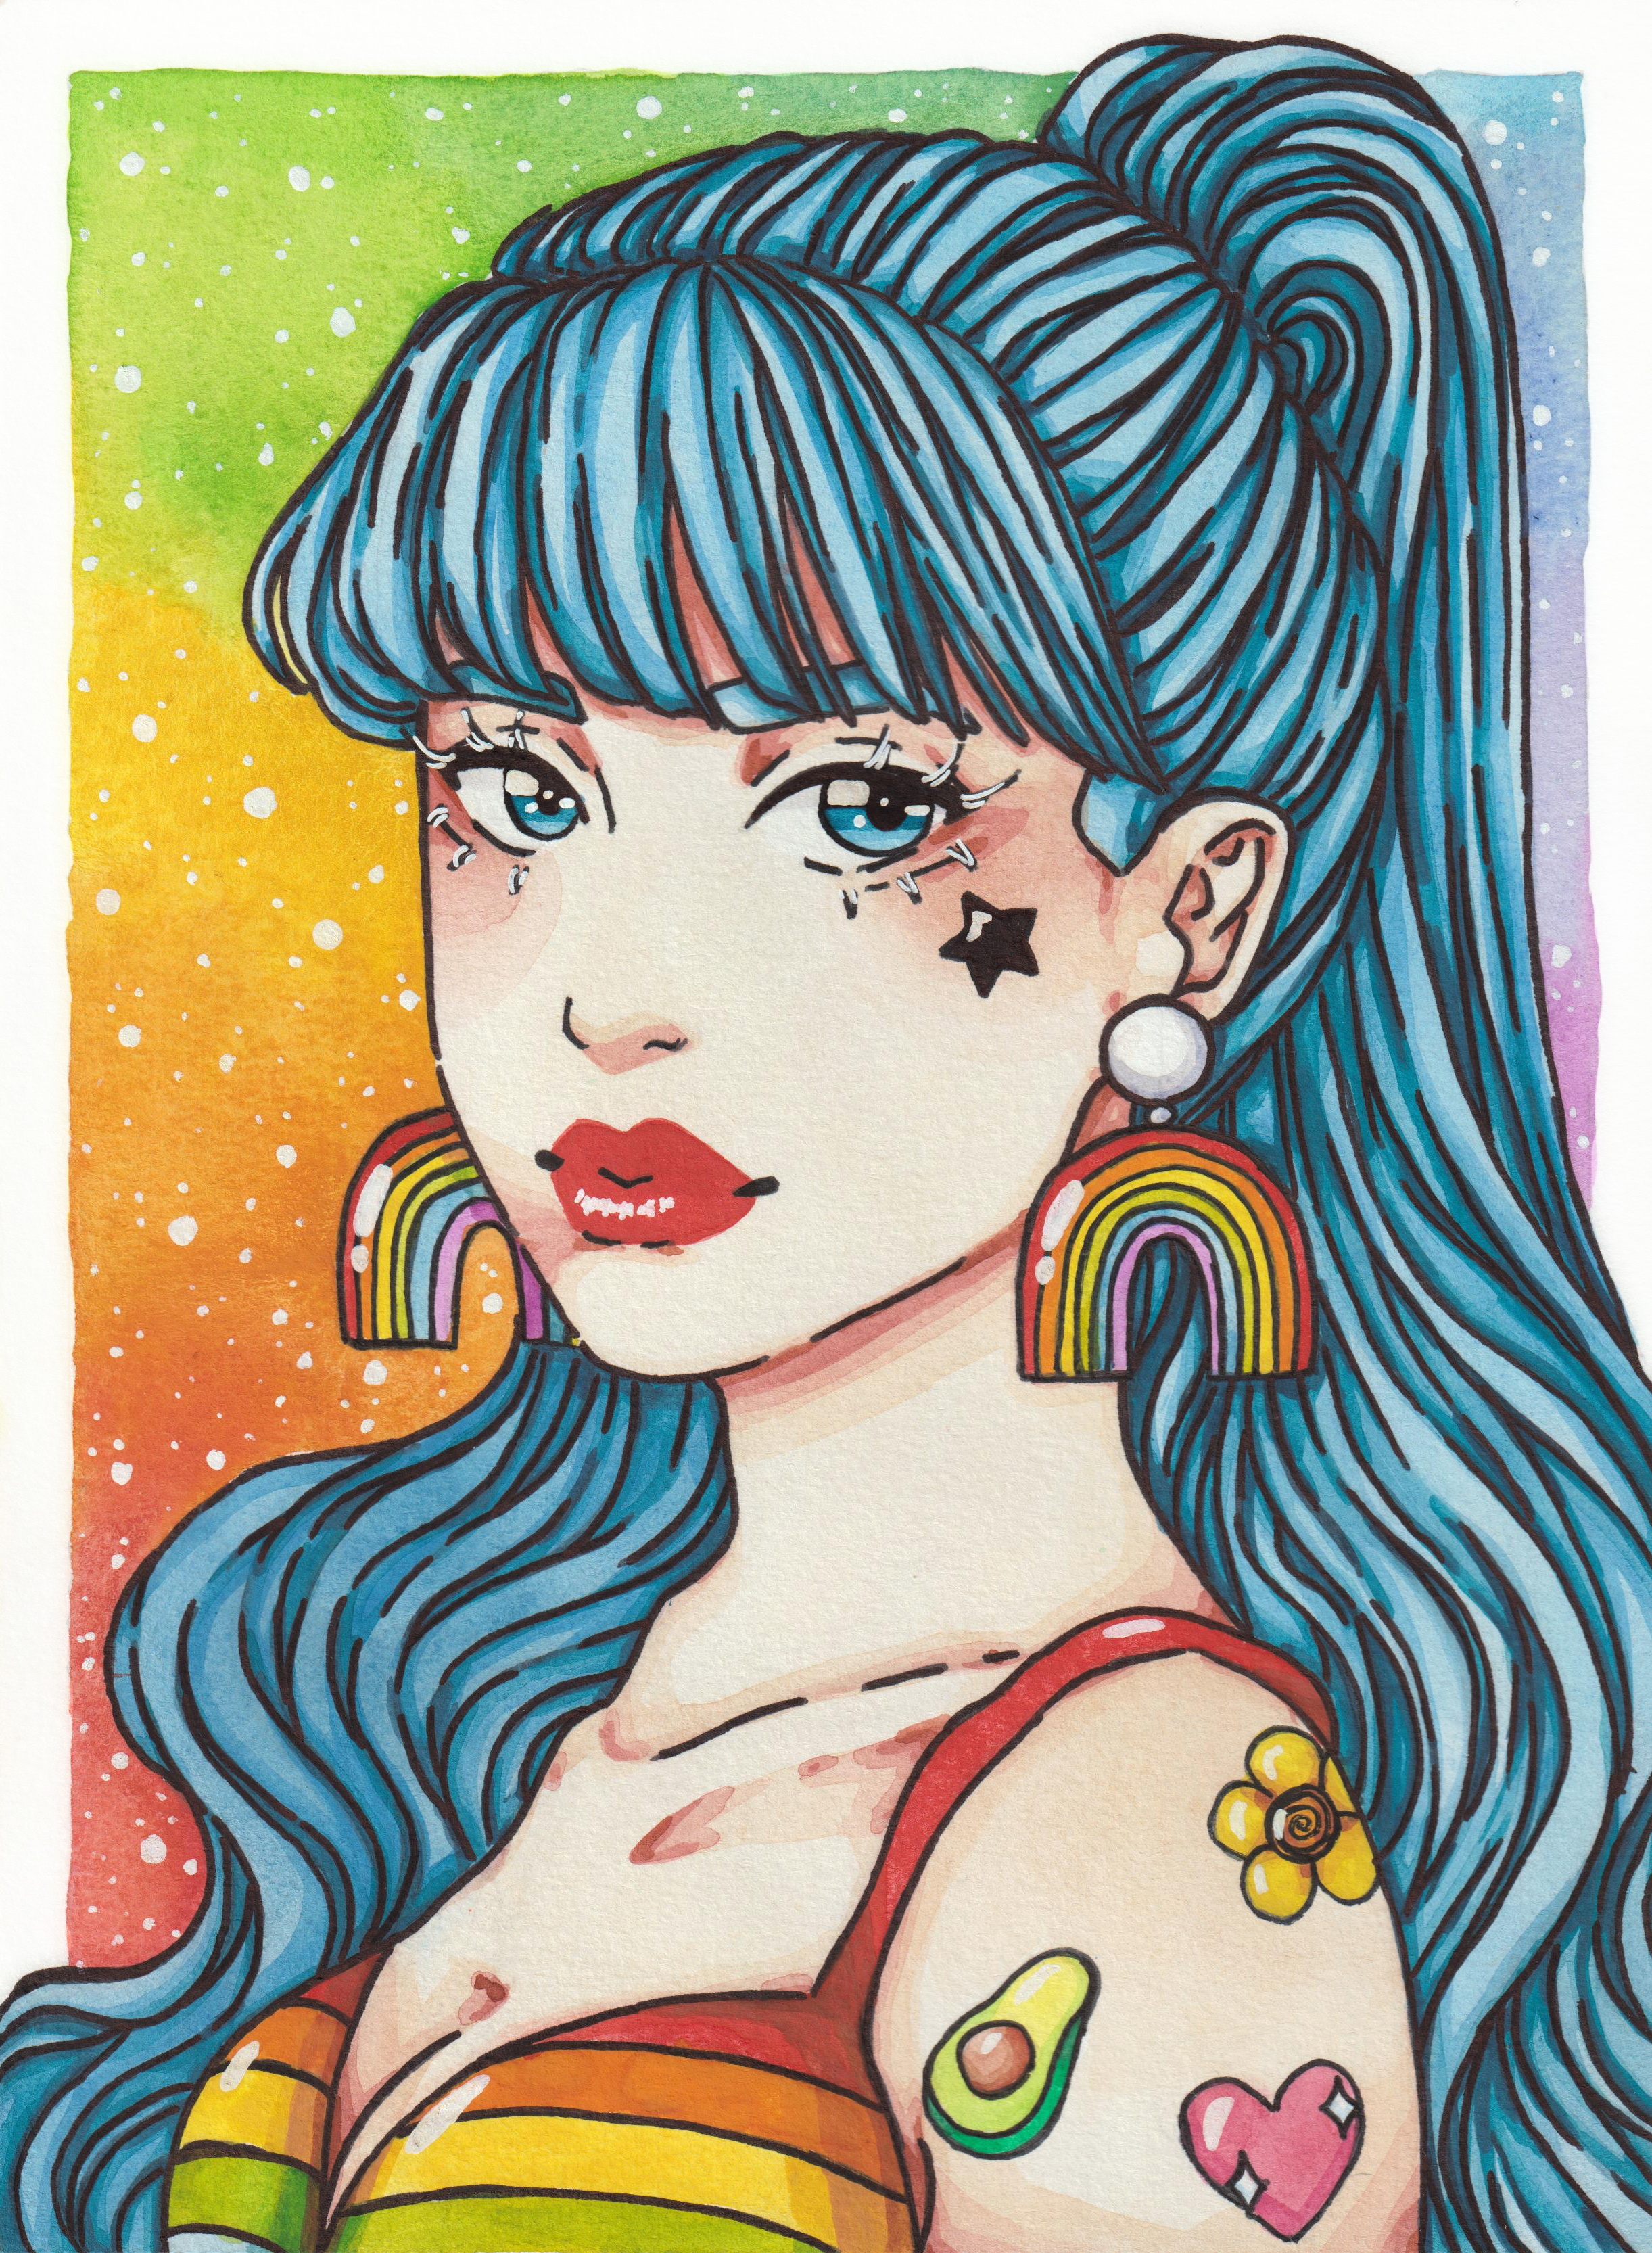 Draw This In Your Style (heymaryjean)